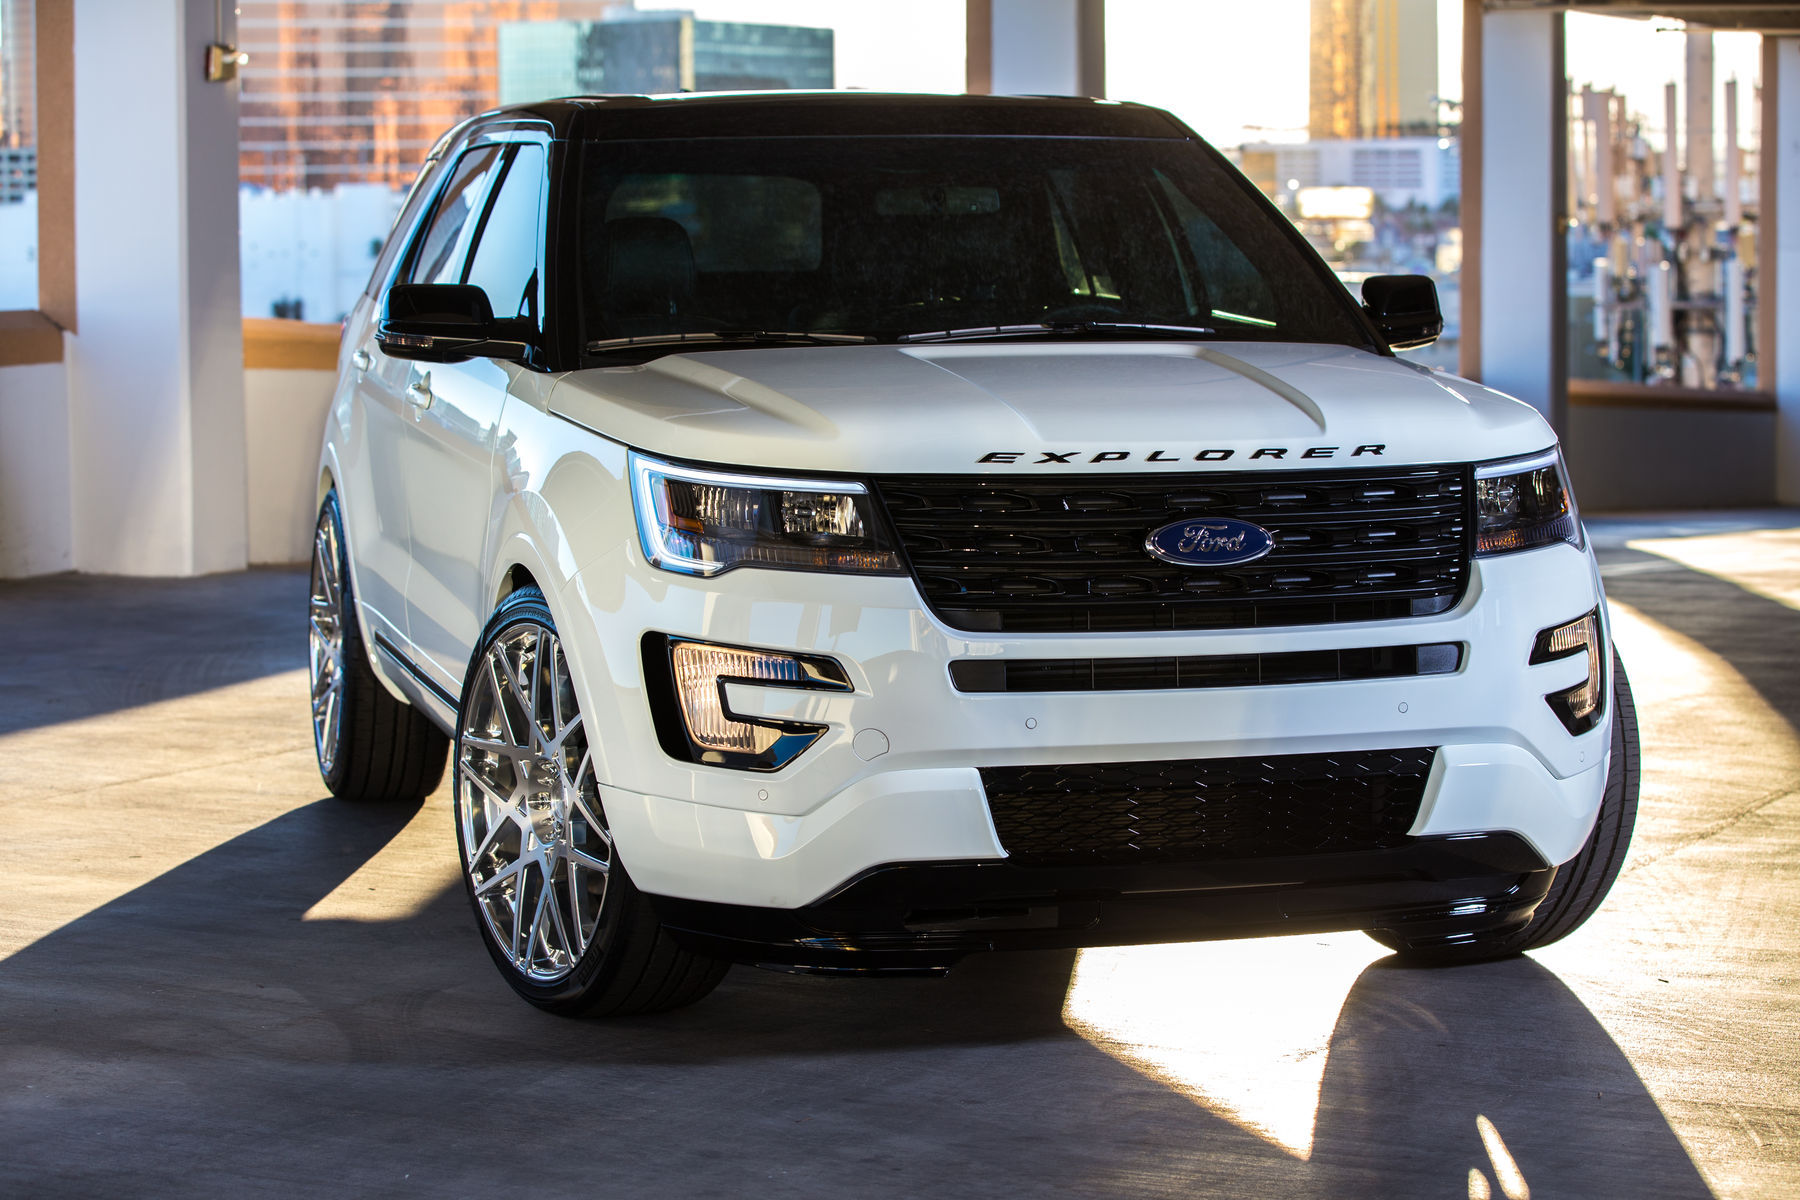 2015 Ford Explorer Sport | 2015 MAD Industries Ford Explorer Sport - Front Shot